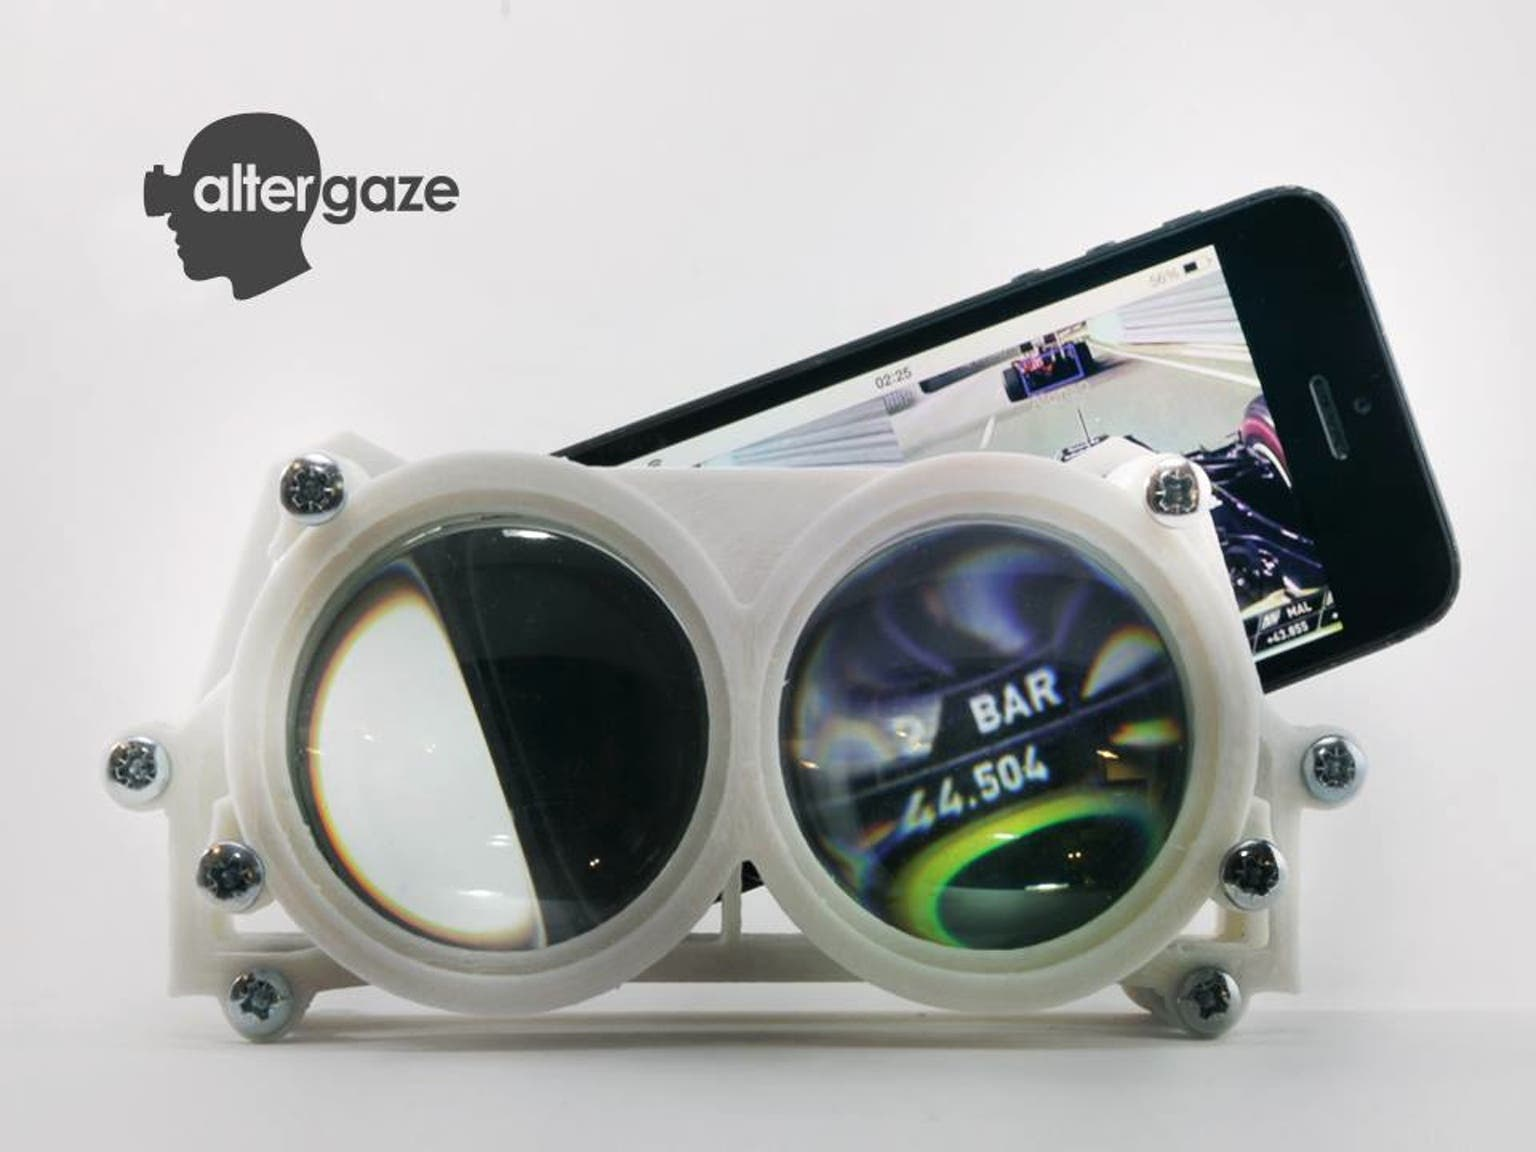 Altergaze VR Headset